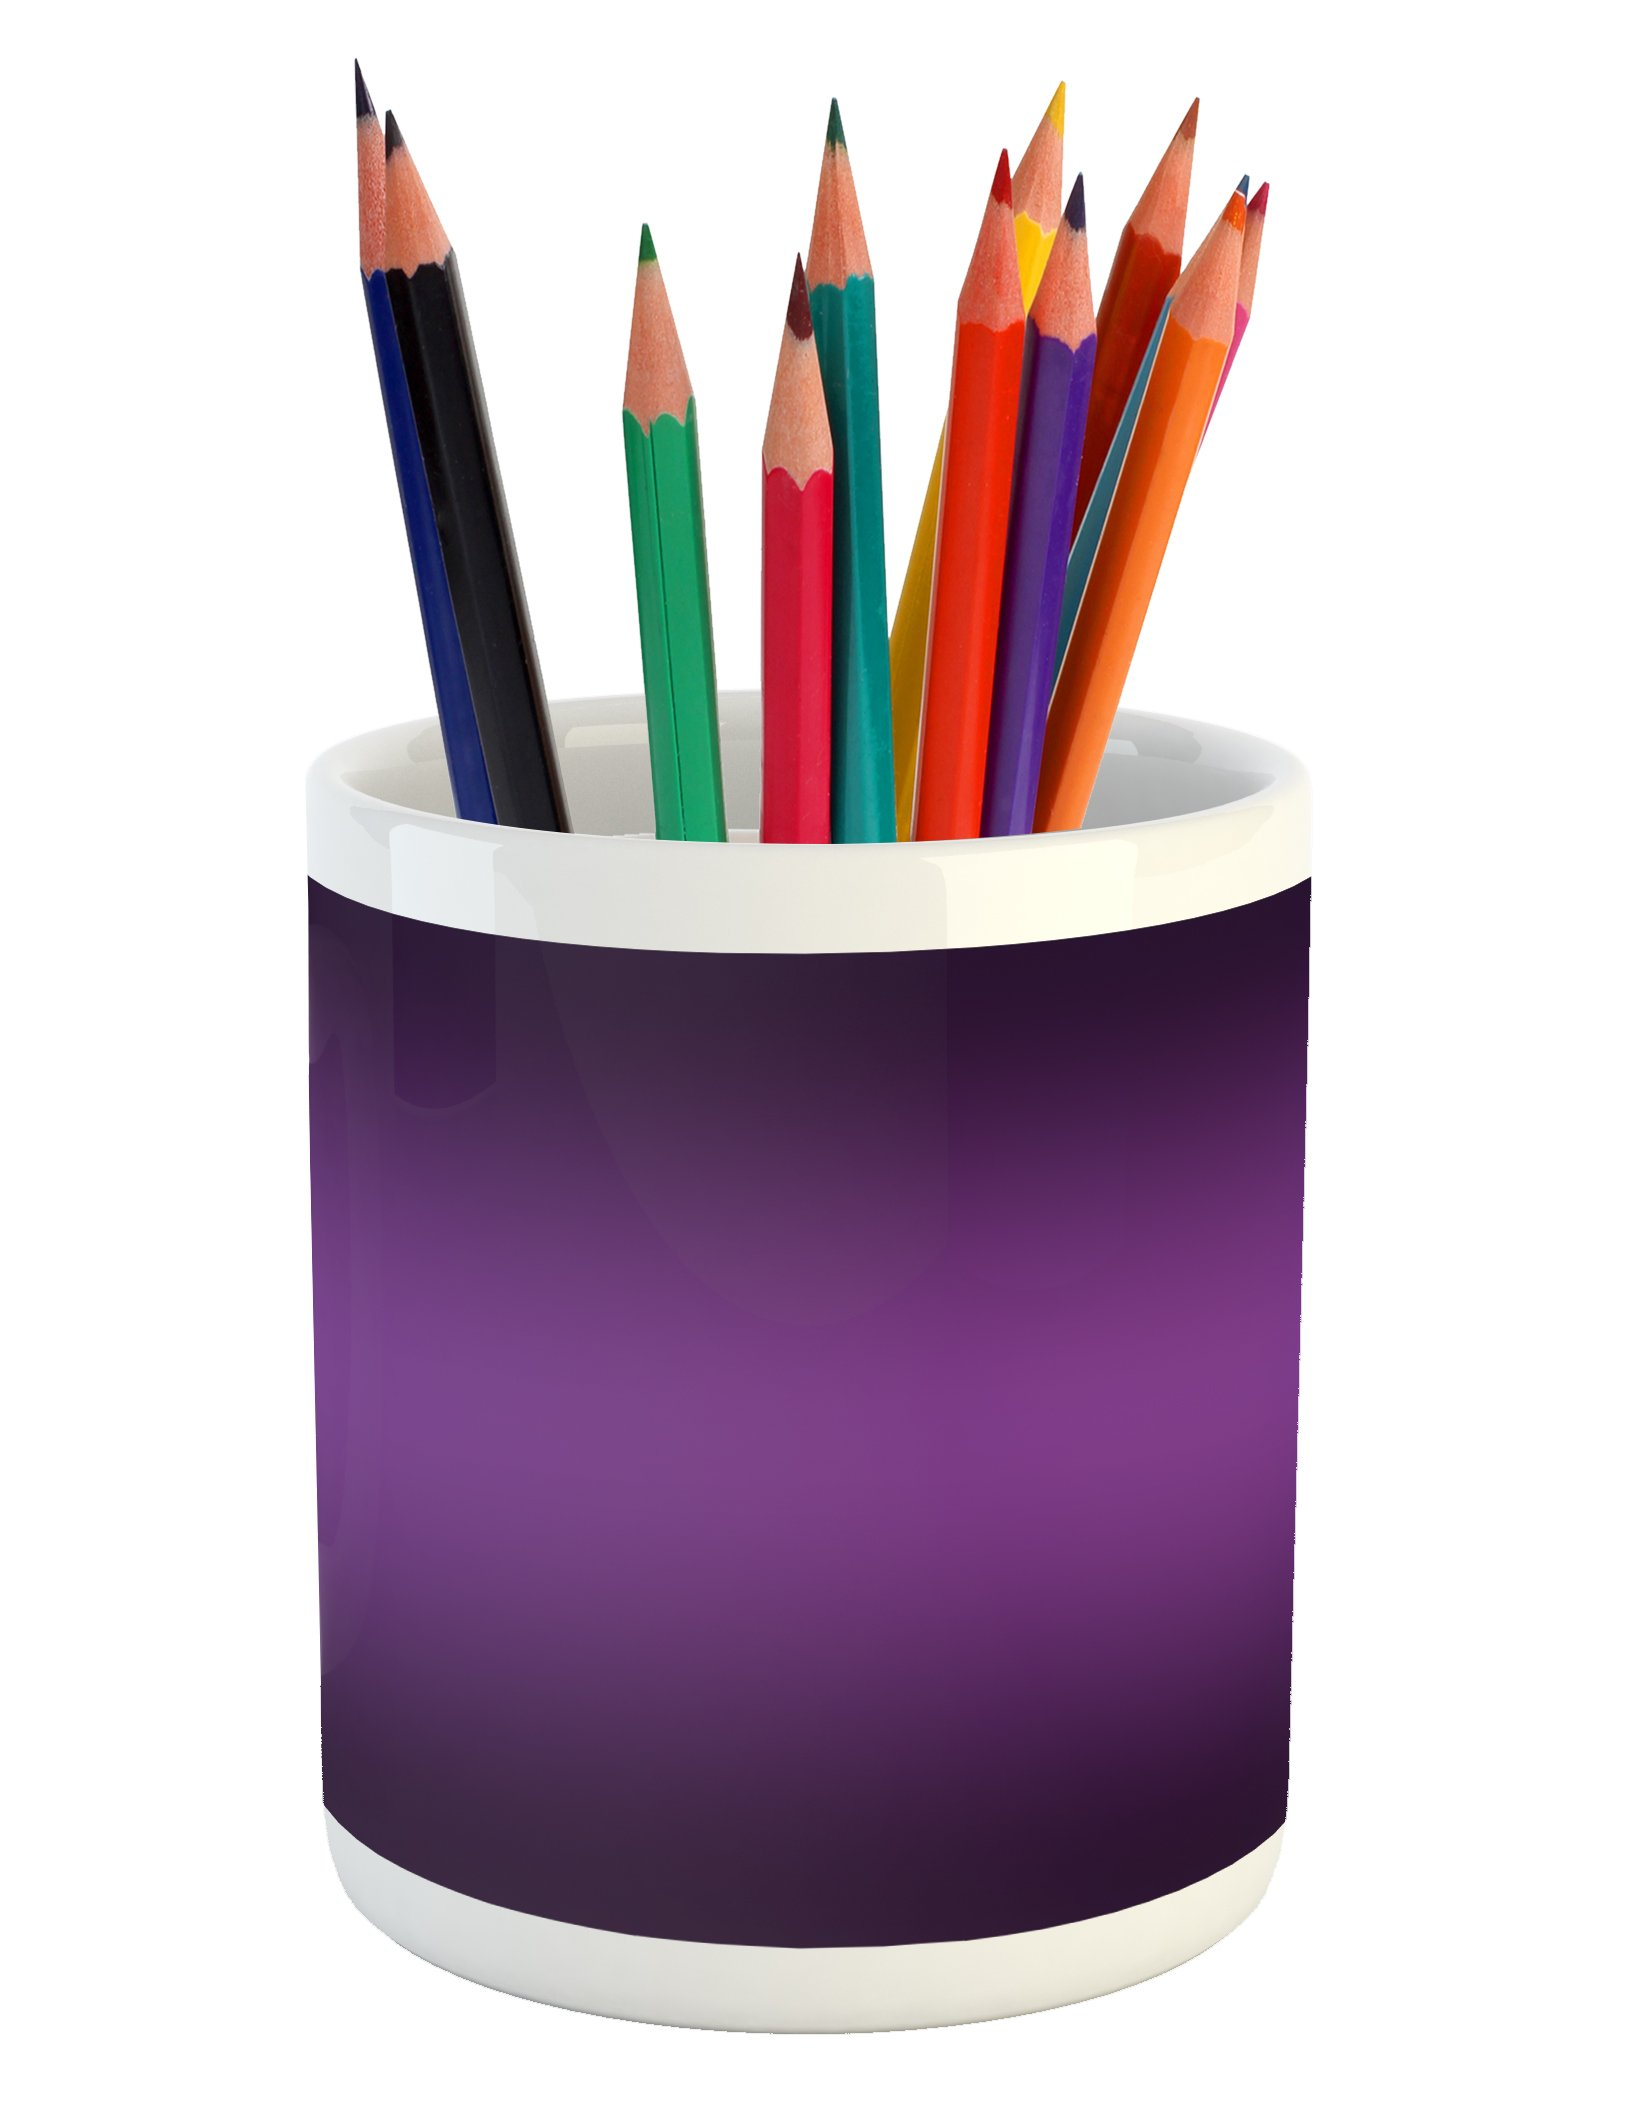 Ambesonne Ombre Pencil Pen Holder, Cinema Curtain Movies Series Inspired Color Ombre Design Digital Artsy Styled Print Image, Printed Ceramic Pencil Pen Holder for Desk Office Accessory, Purple